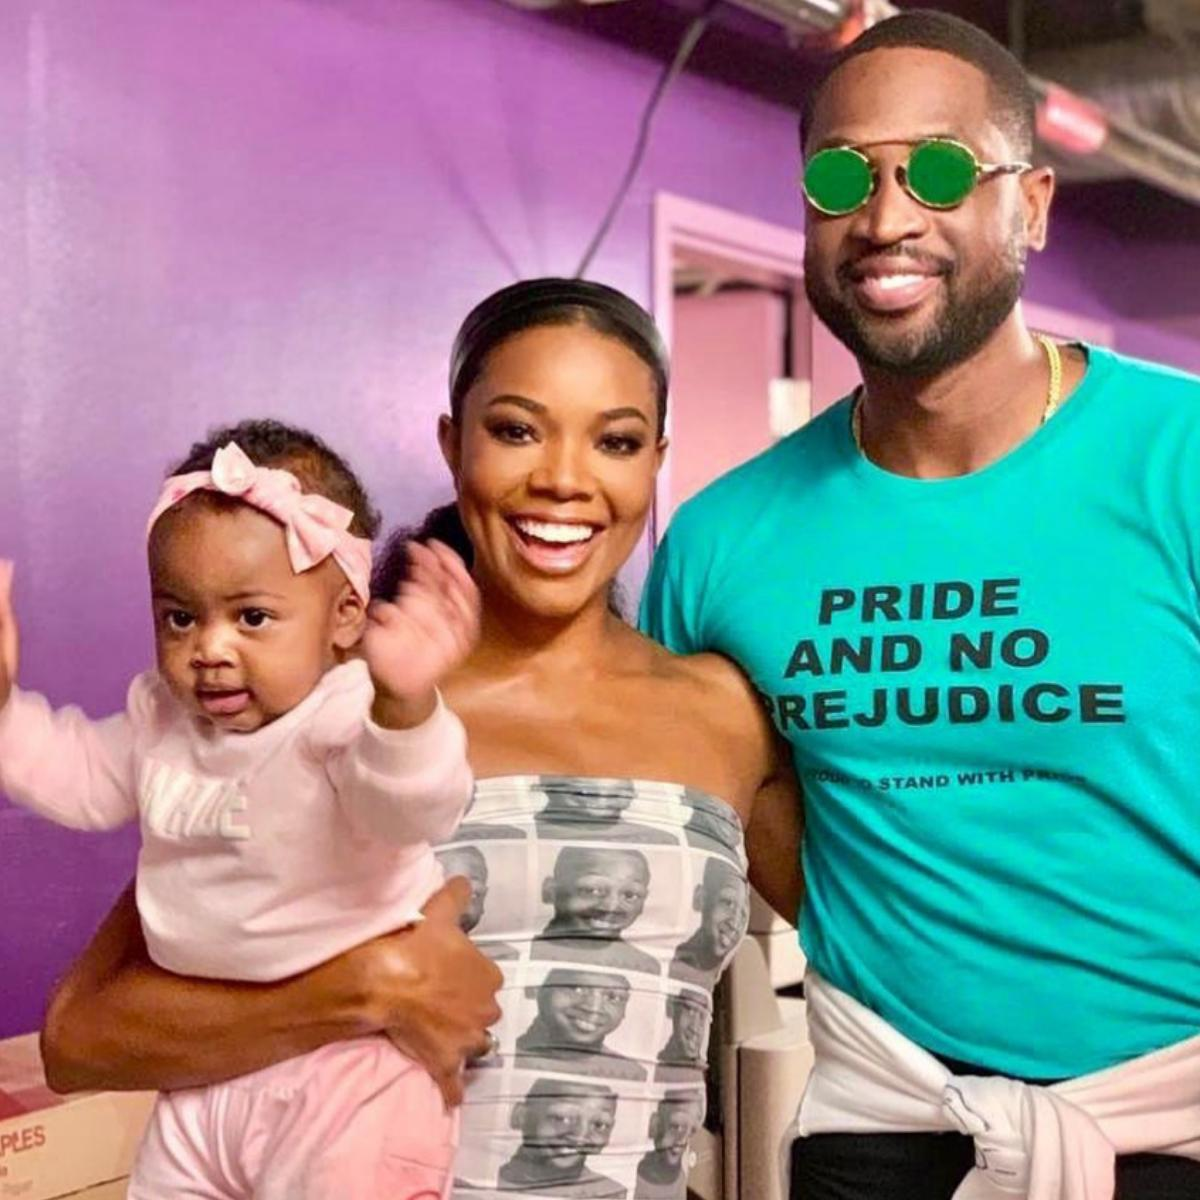 Dwyane Wade Won't Let Their Kids Believe In Santa Claus